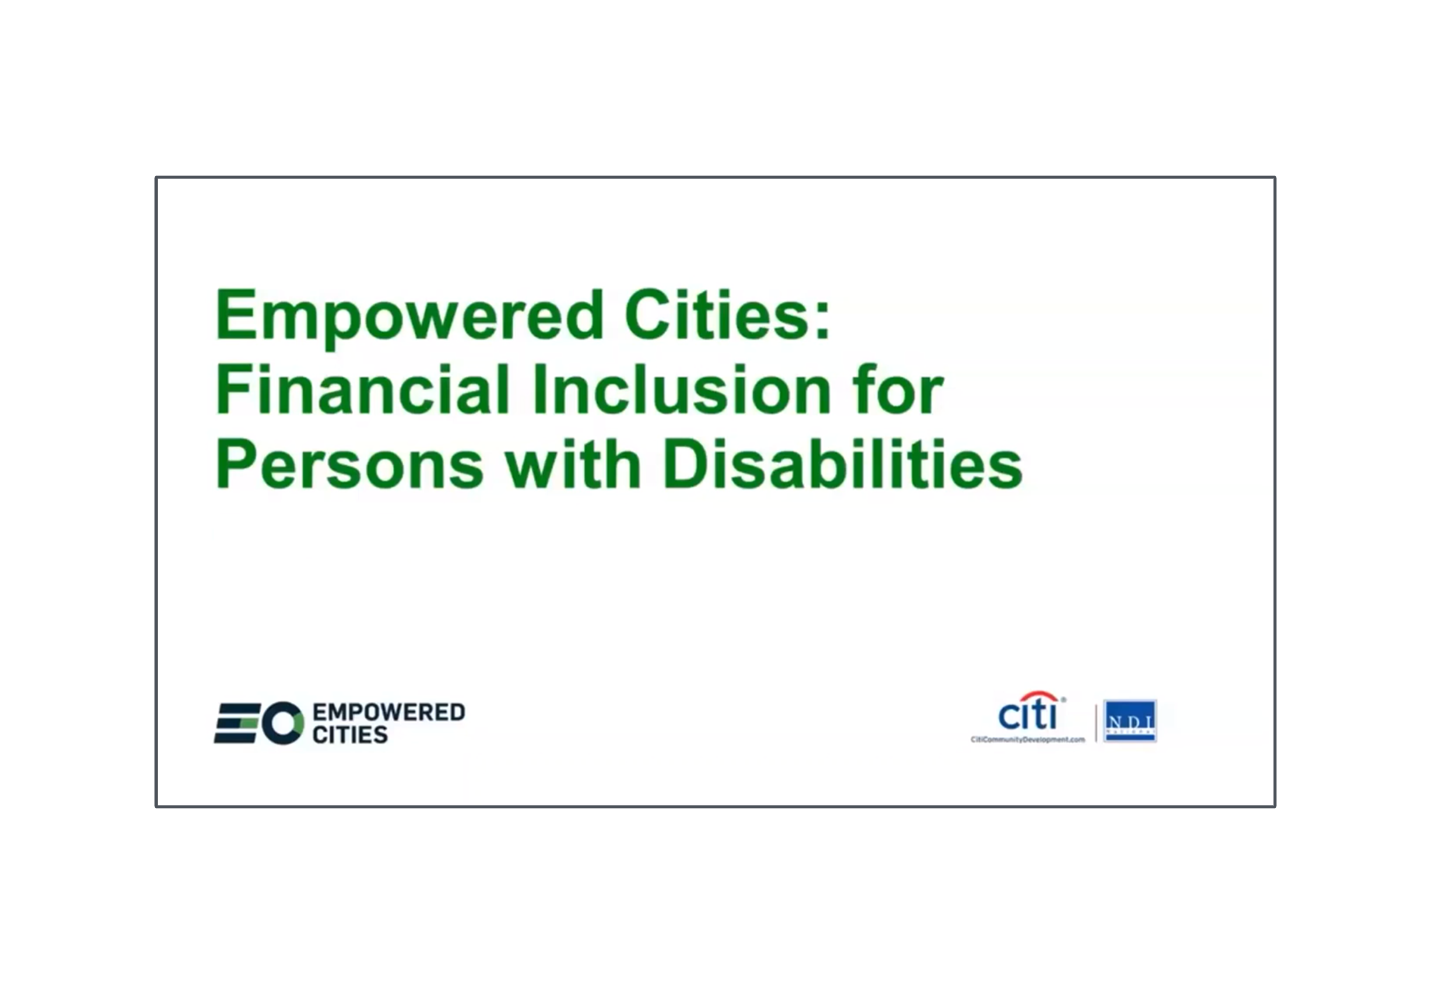 Defining Financial Inclusion for Persons with Disabilities and Why It Matters